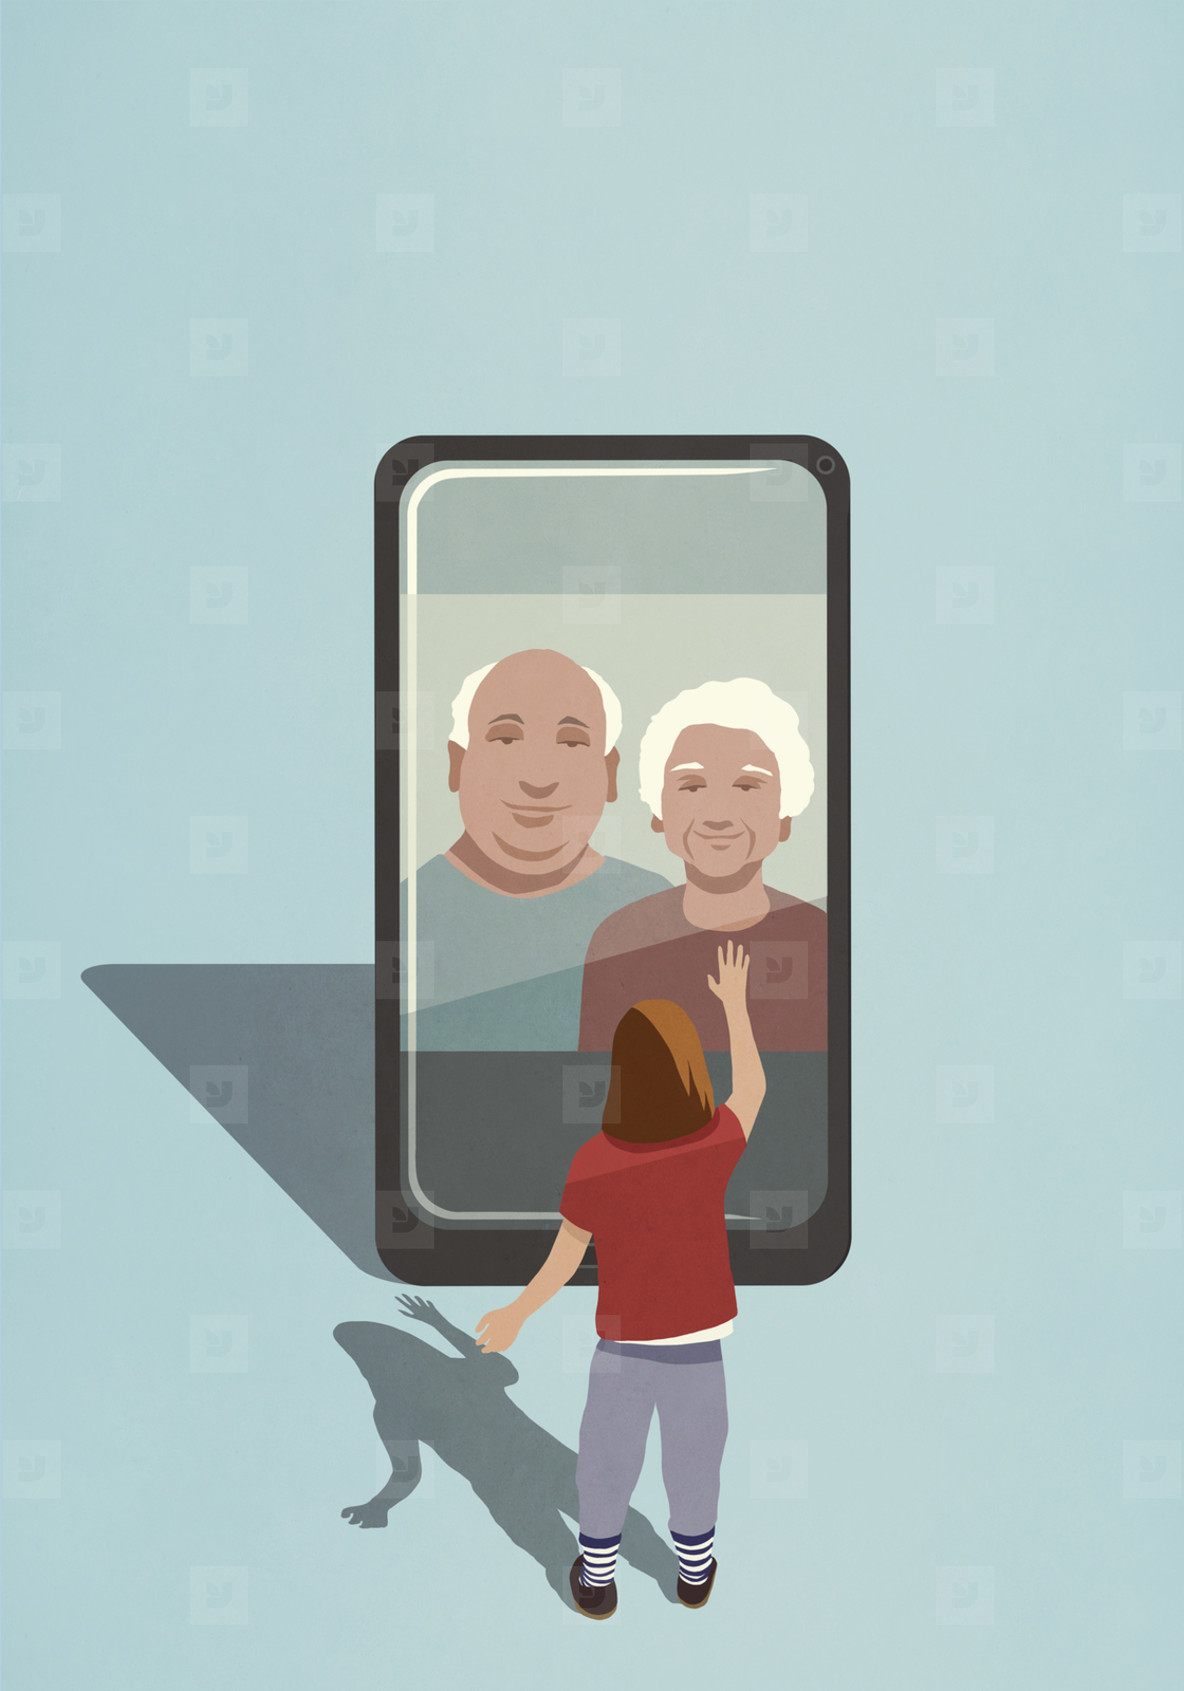 Girl video chatting with grandparents on smart phone screen